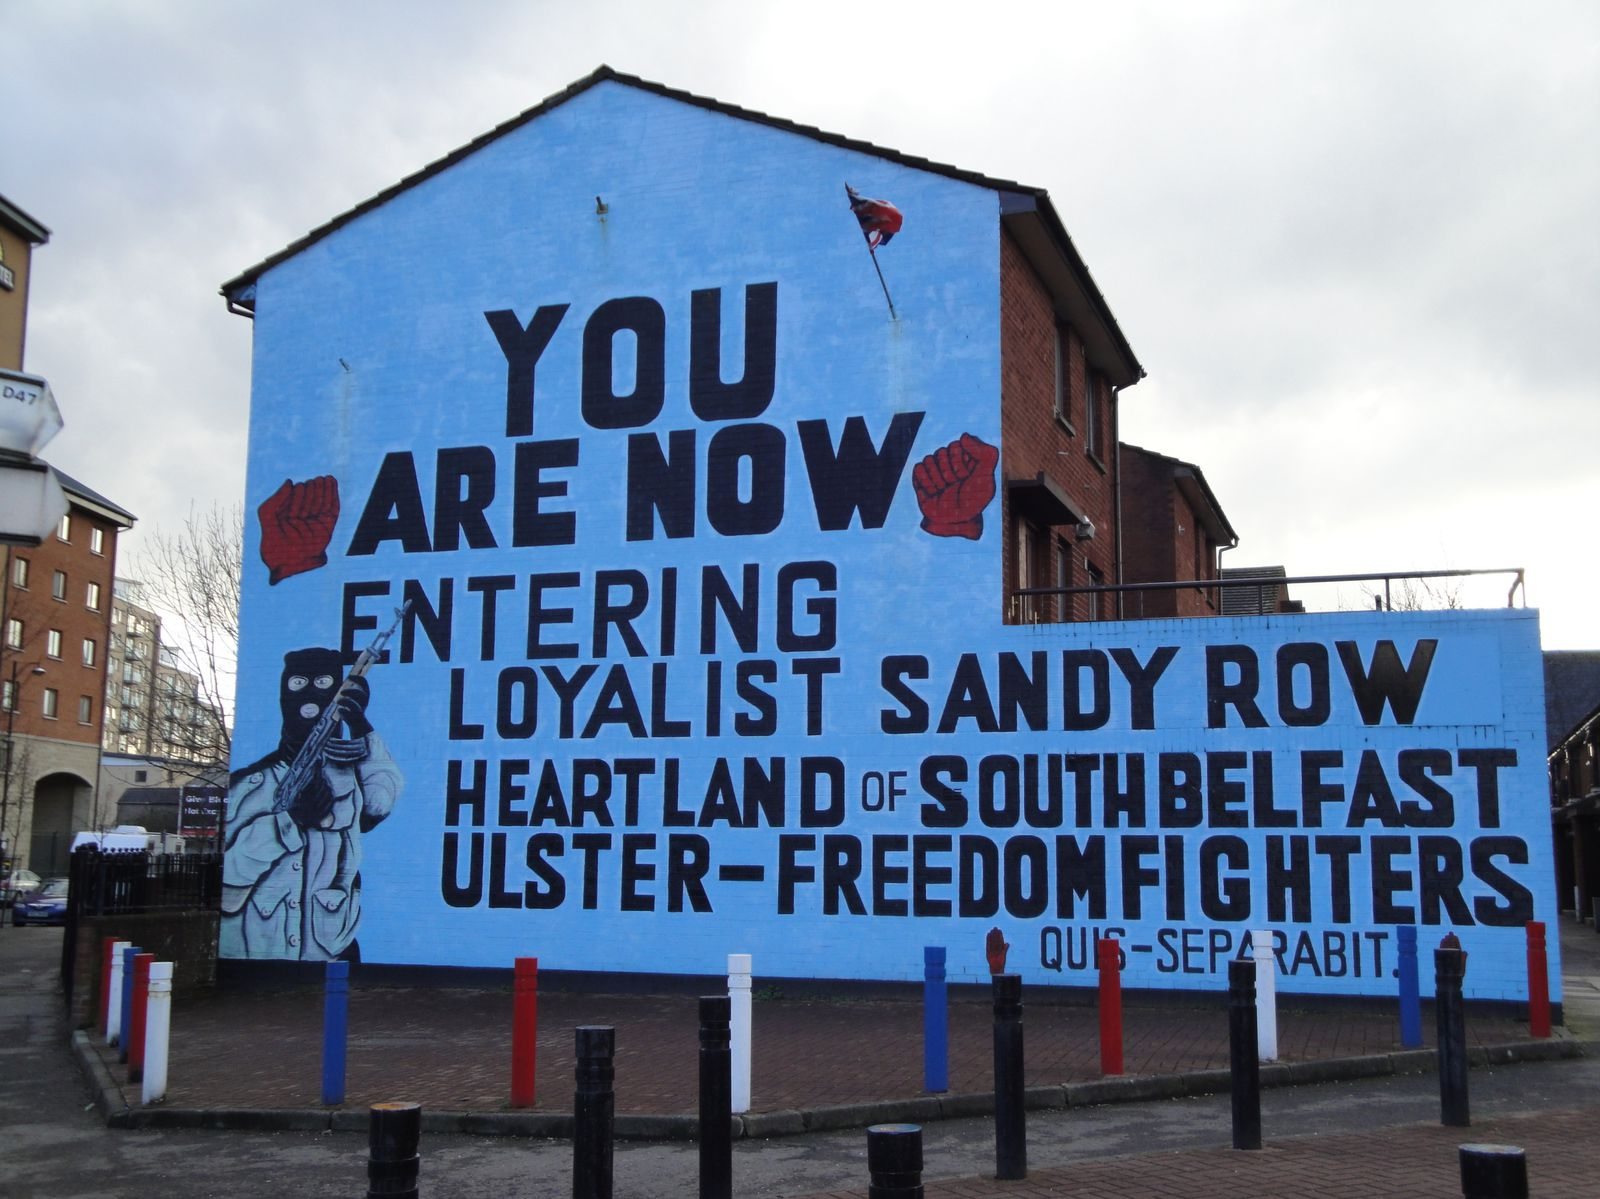 444) Sandy Row, South Belfast